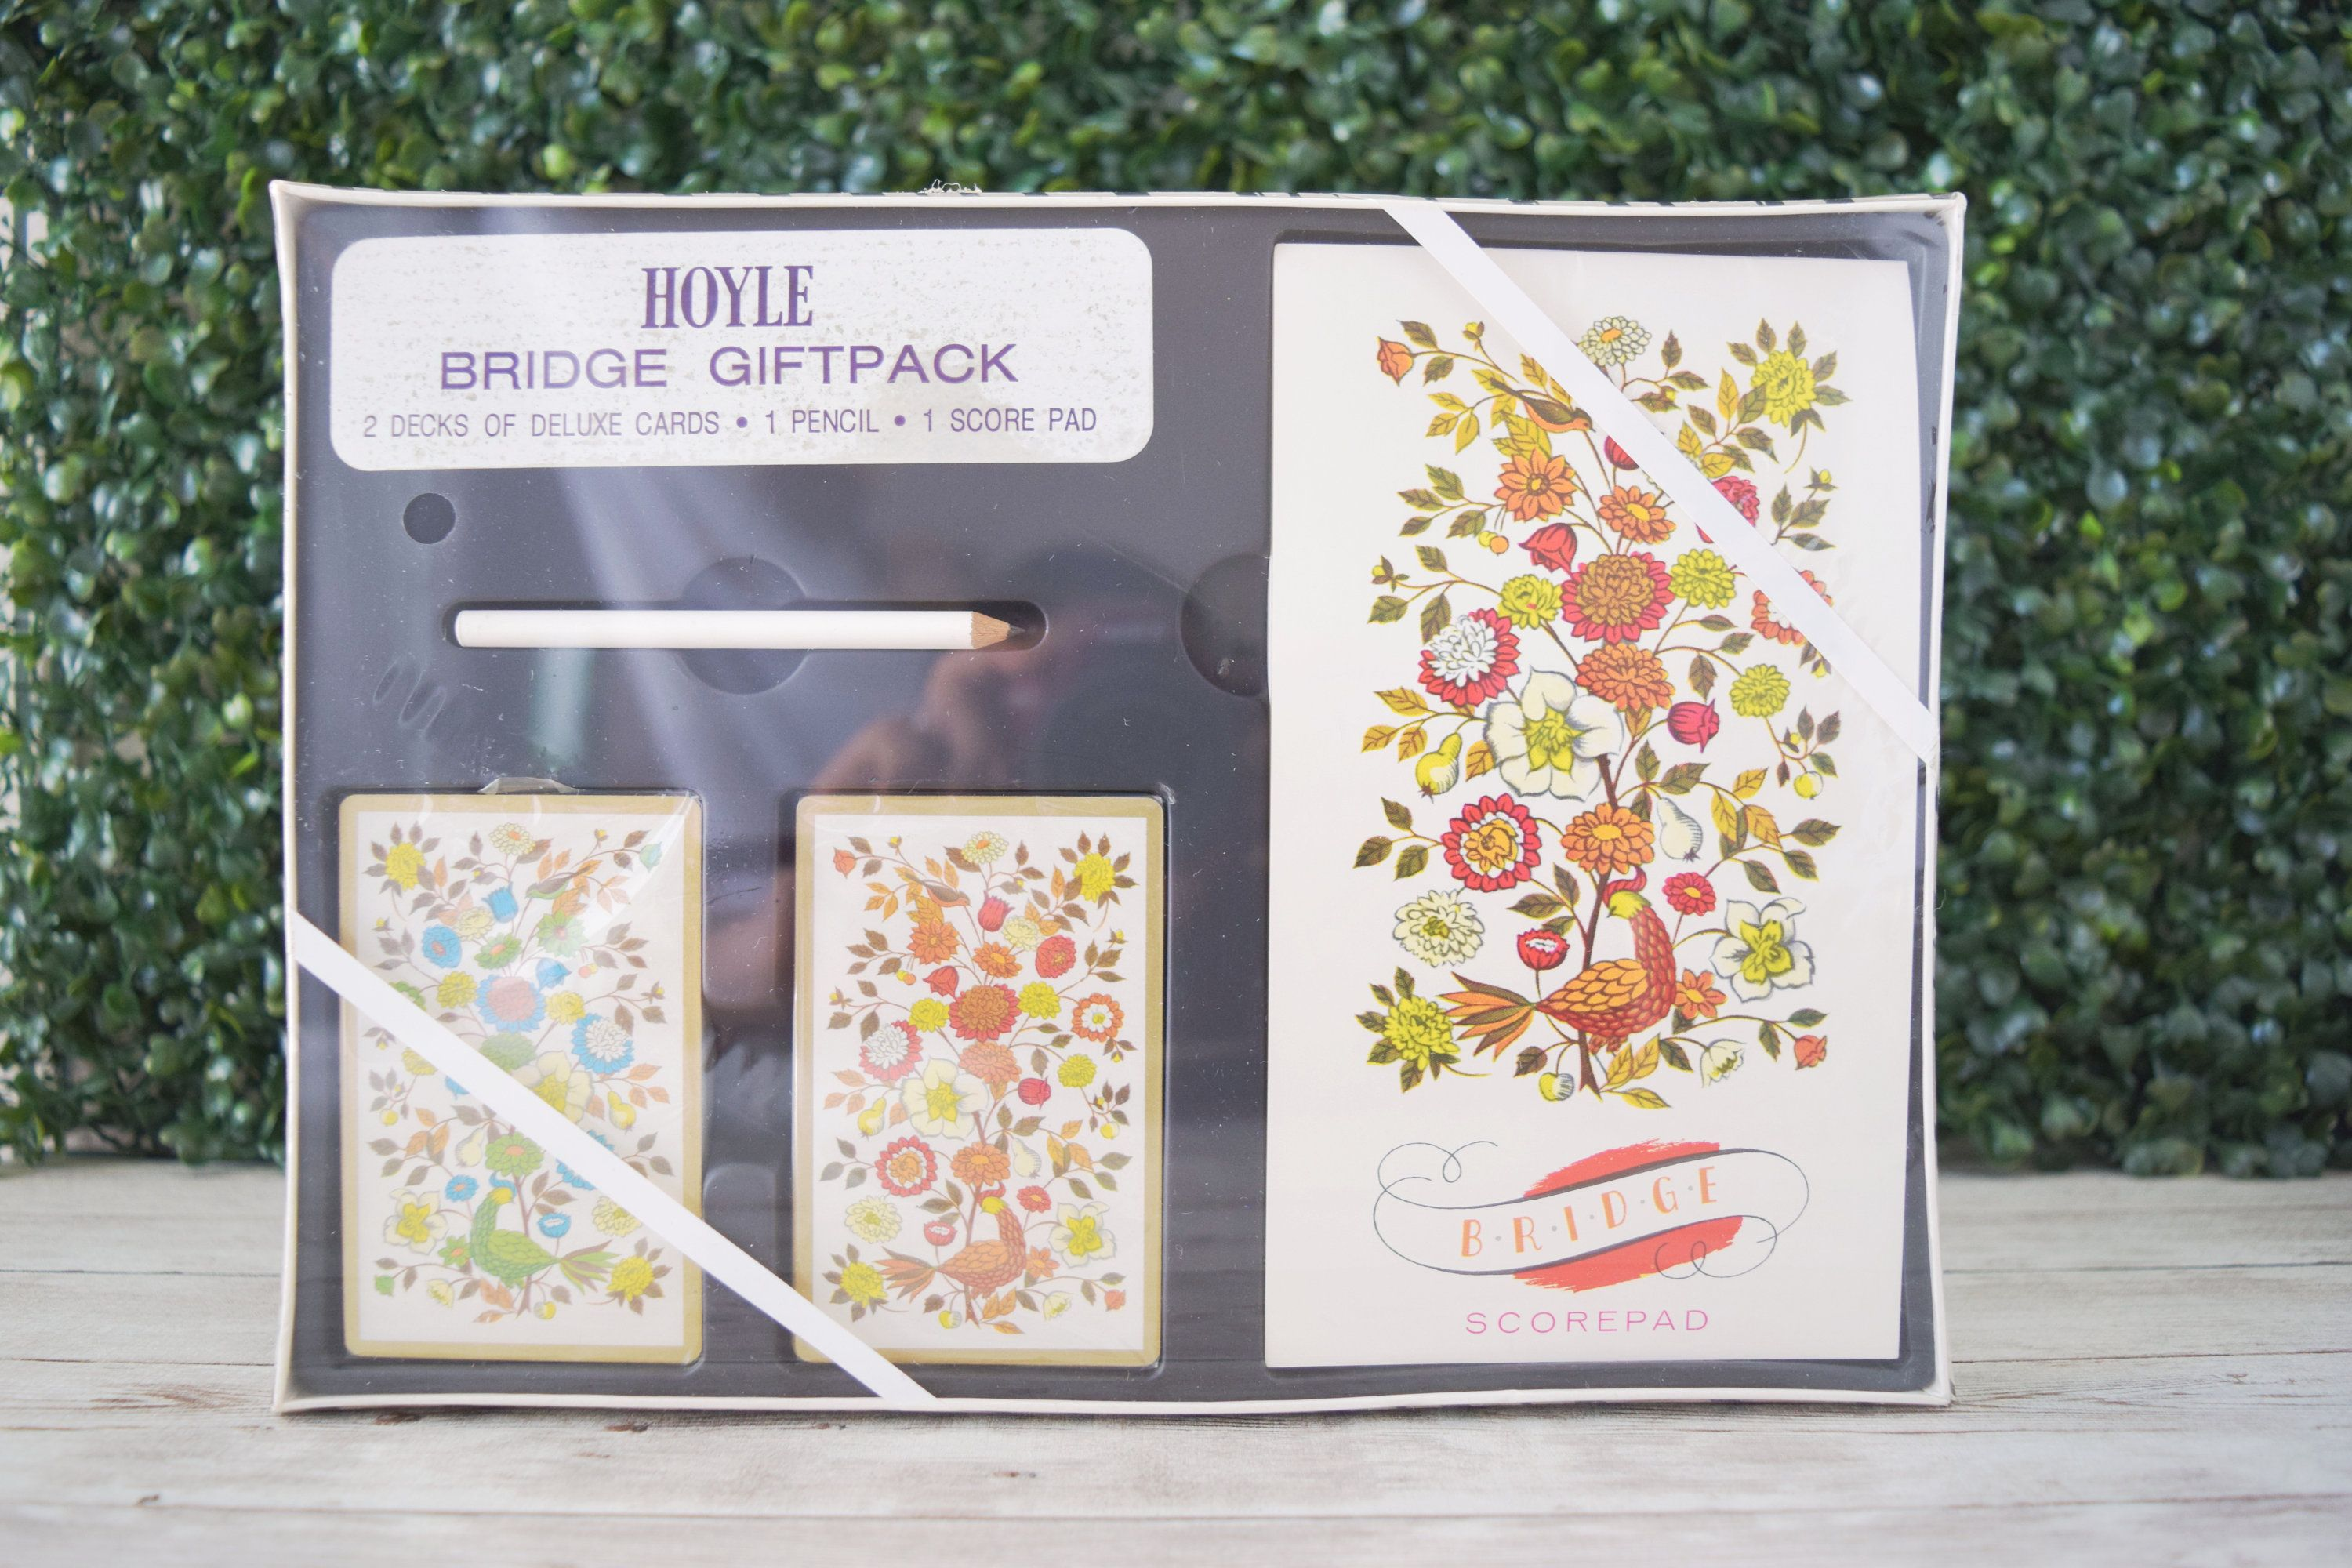 Set Of 2 Full Deck Of Playing Cards For Bridge Game Gift Pack